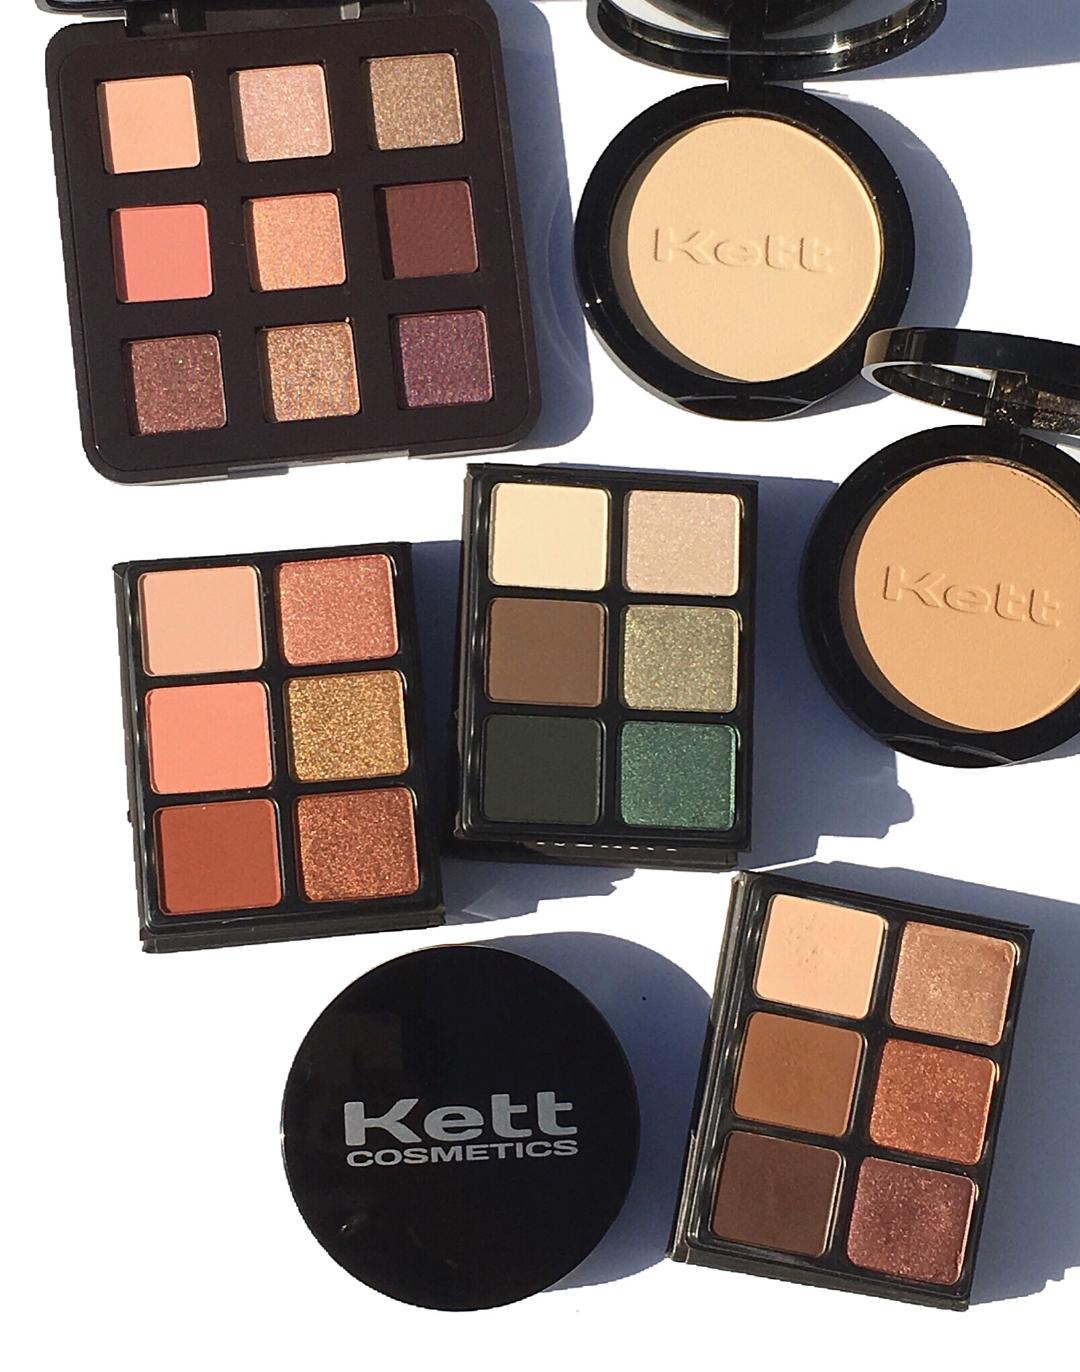 Viseart Absinthe & Siren Theory Palettes & Kett Fixx Powder Foundation Compact